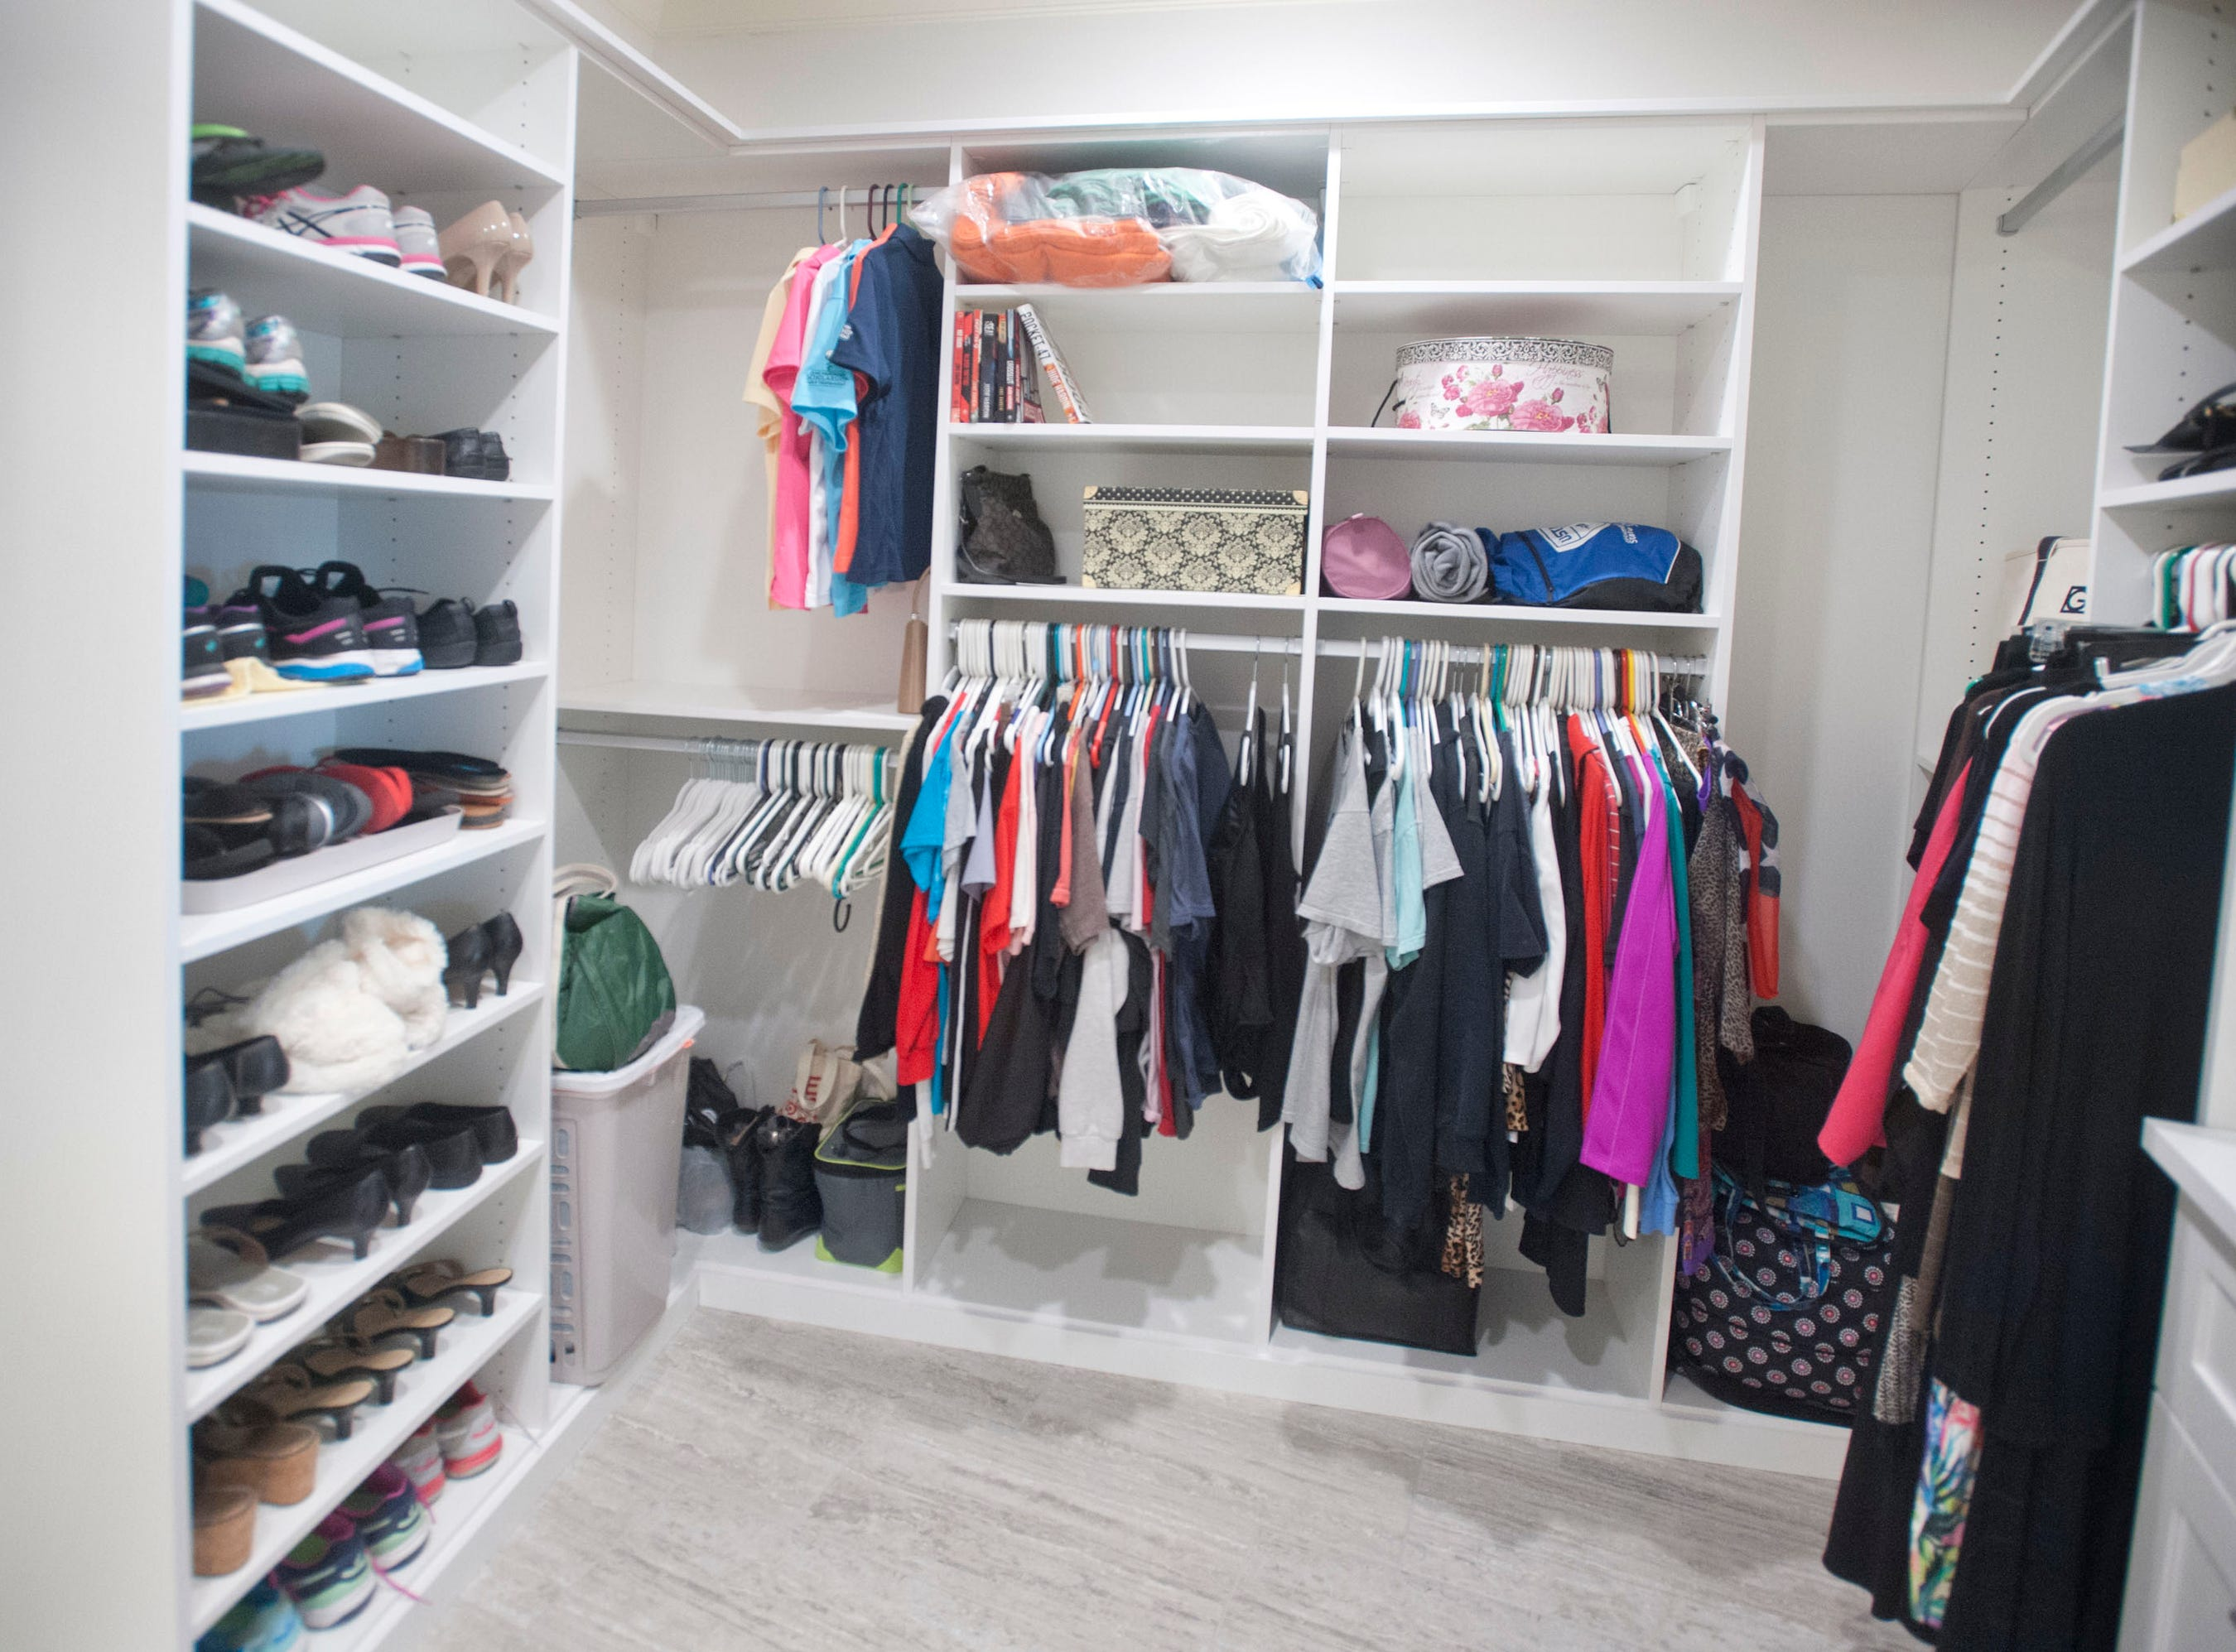 The walk-in closet in the condominium of Denise Puthuff.